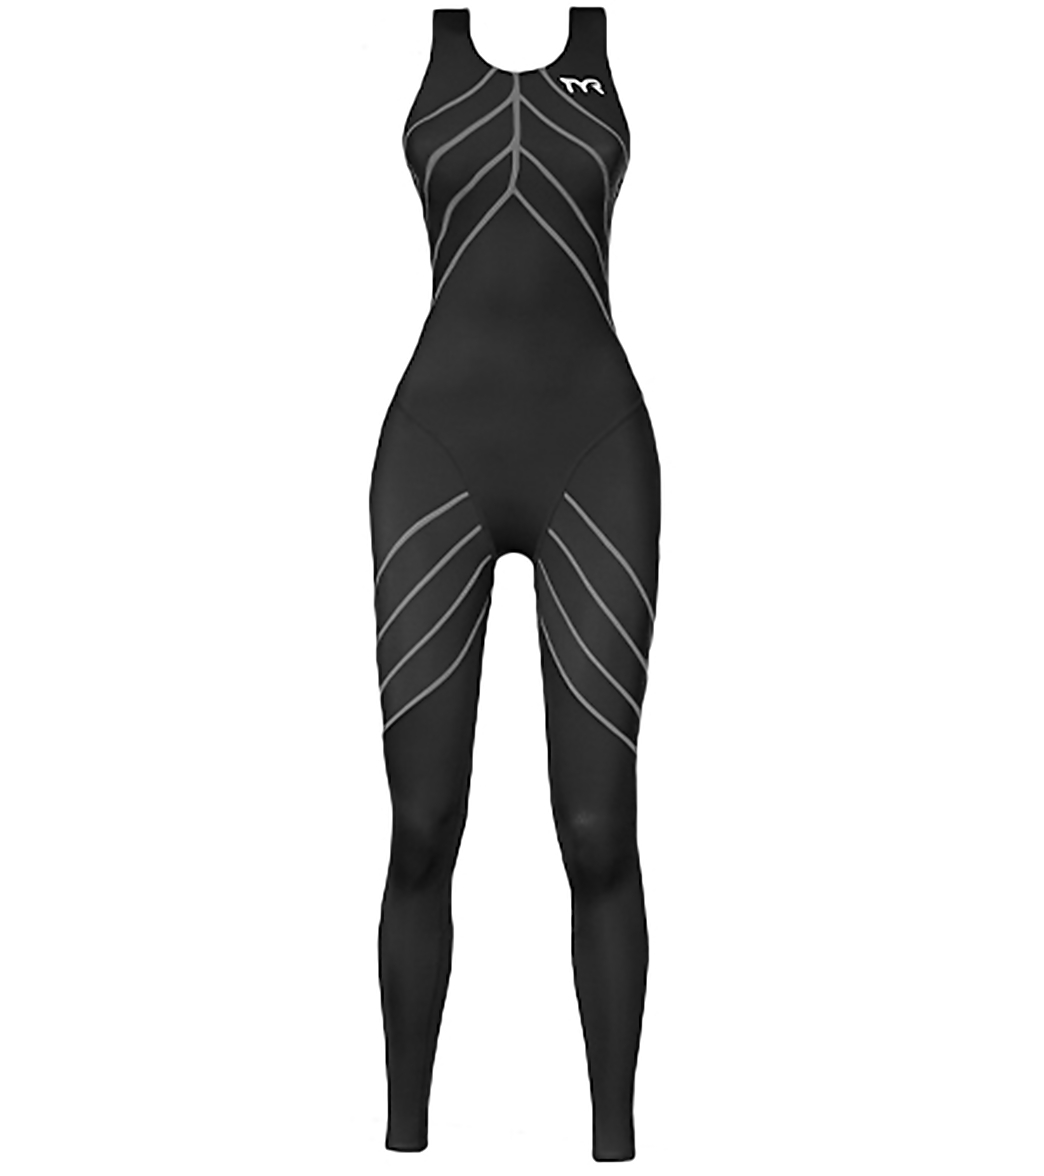 TYR Aquapel Female Full Body Tech Suit Swimsuit at SwimOutlet.com - Free  Shipping 6dbd1eb3b